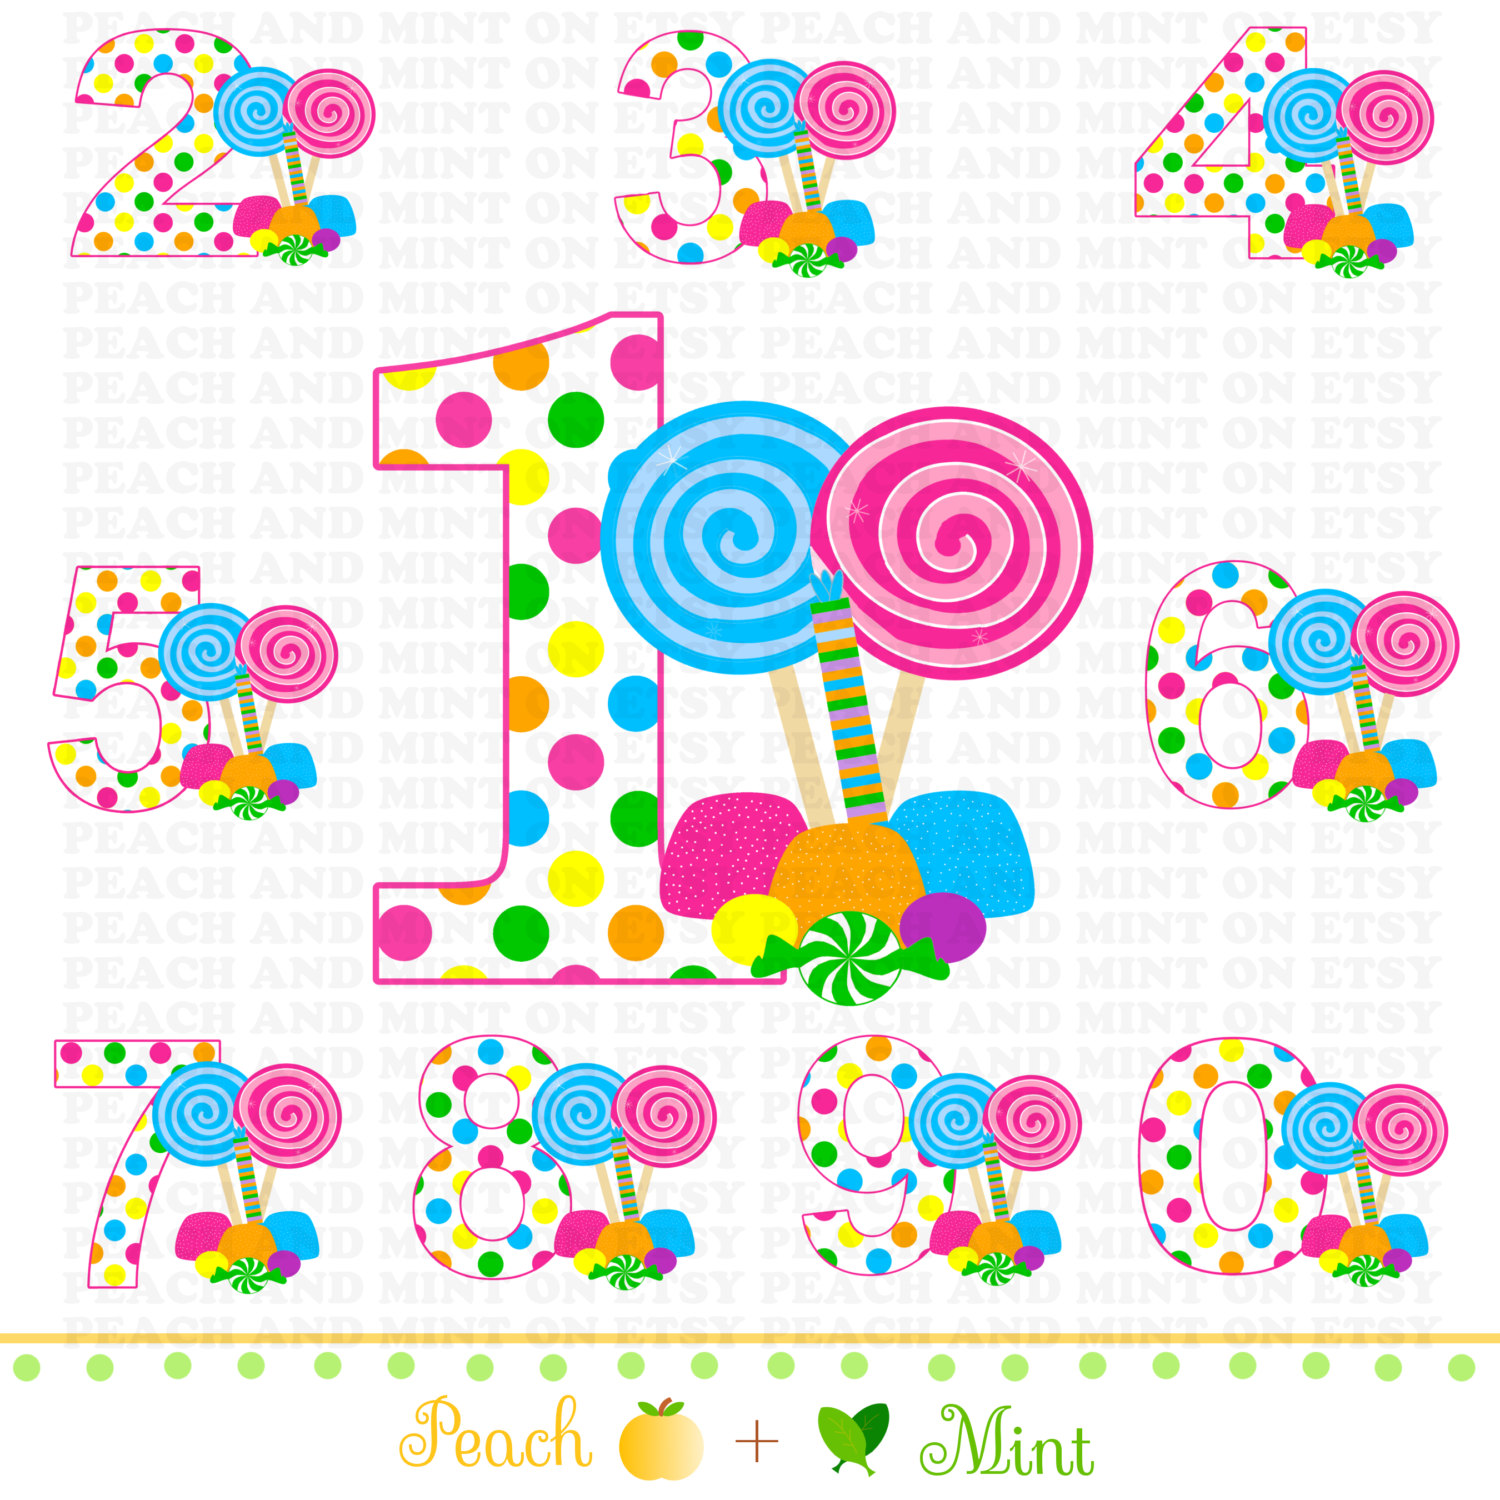 Striped number 1 clipart clipart black and white library Lollipop clip art free download - ClipartFox clipart black and white library